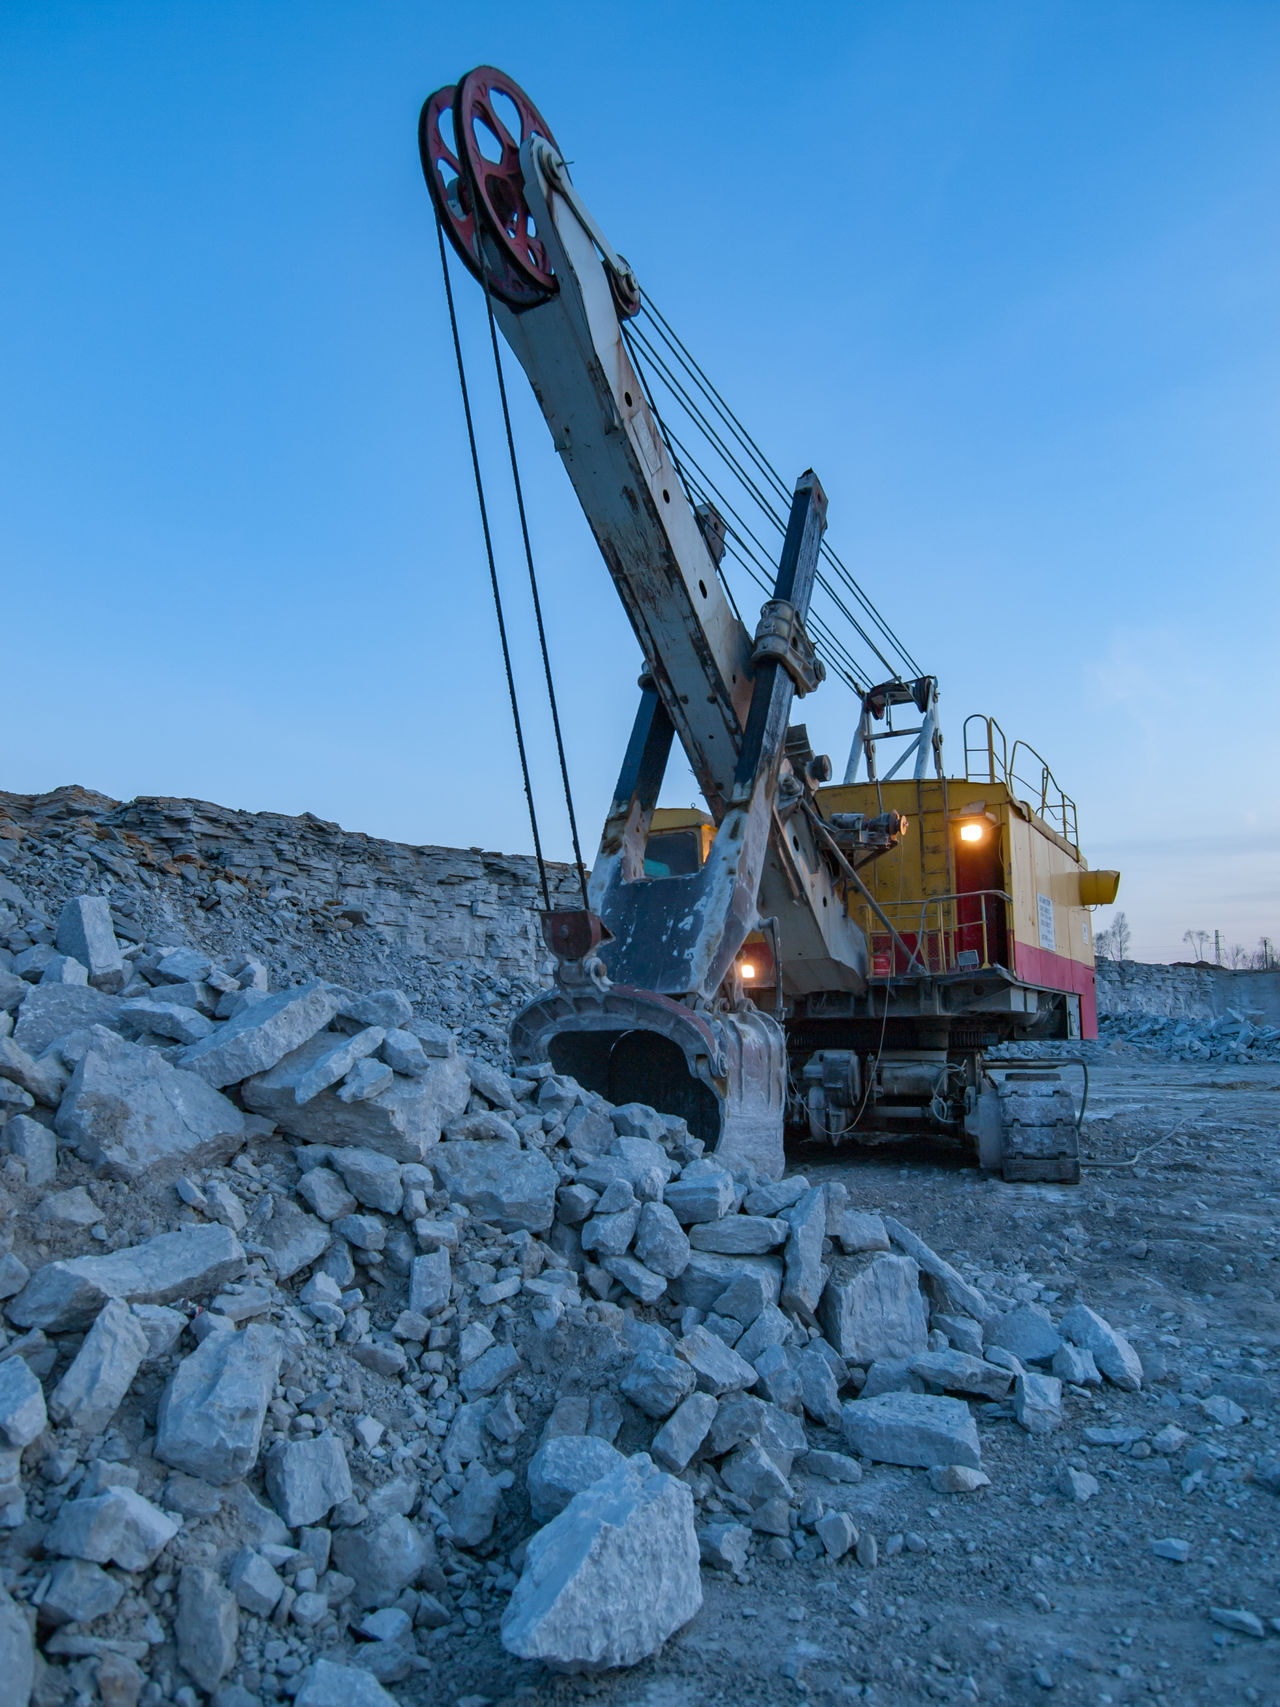 Business Finance And Industry Equipment Equipments Evening Excavator Industry Landscape Limestone No People Outdoors Quarry Quarry Rock Rock - Object